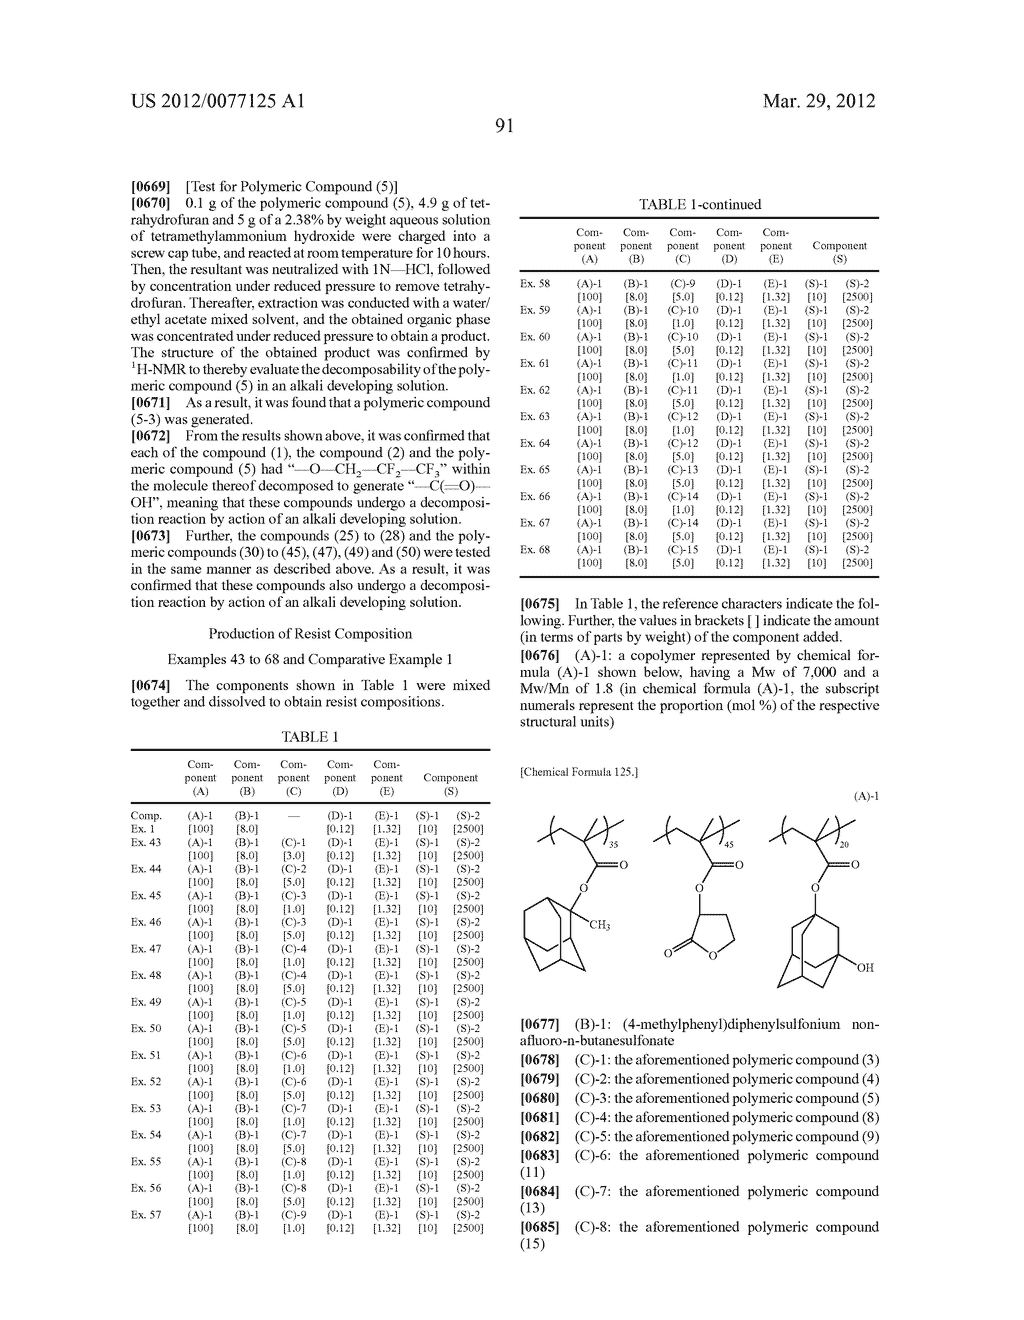 RESIST COMPOSITION FOR IMMERSION EXPOSURE, METHOD OF FORMING RESIST     PATTERN USING THE SAME, AND FLUORINE-CONTAINING COMPOUND - diagram, schematic, and image 93